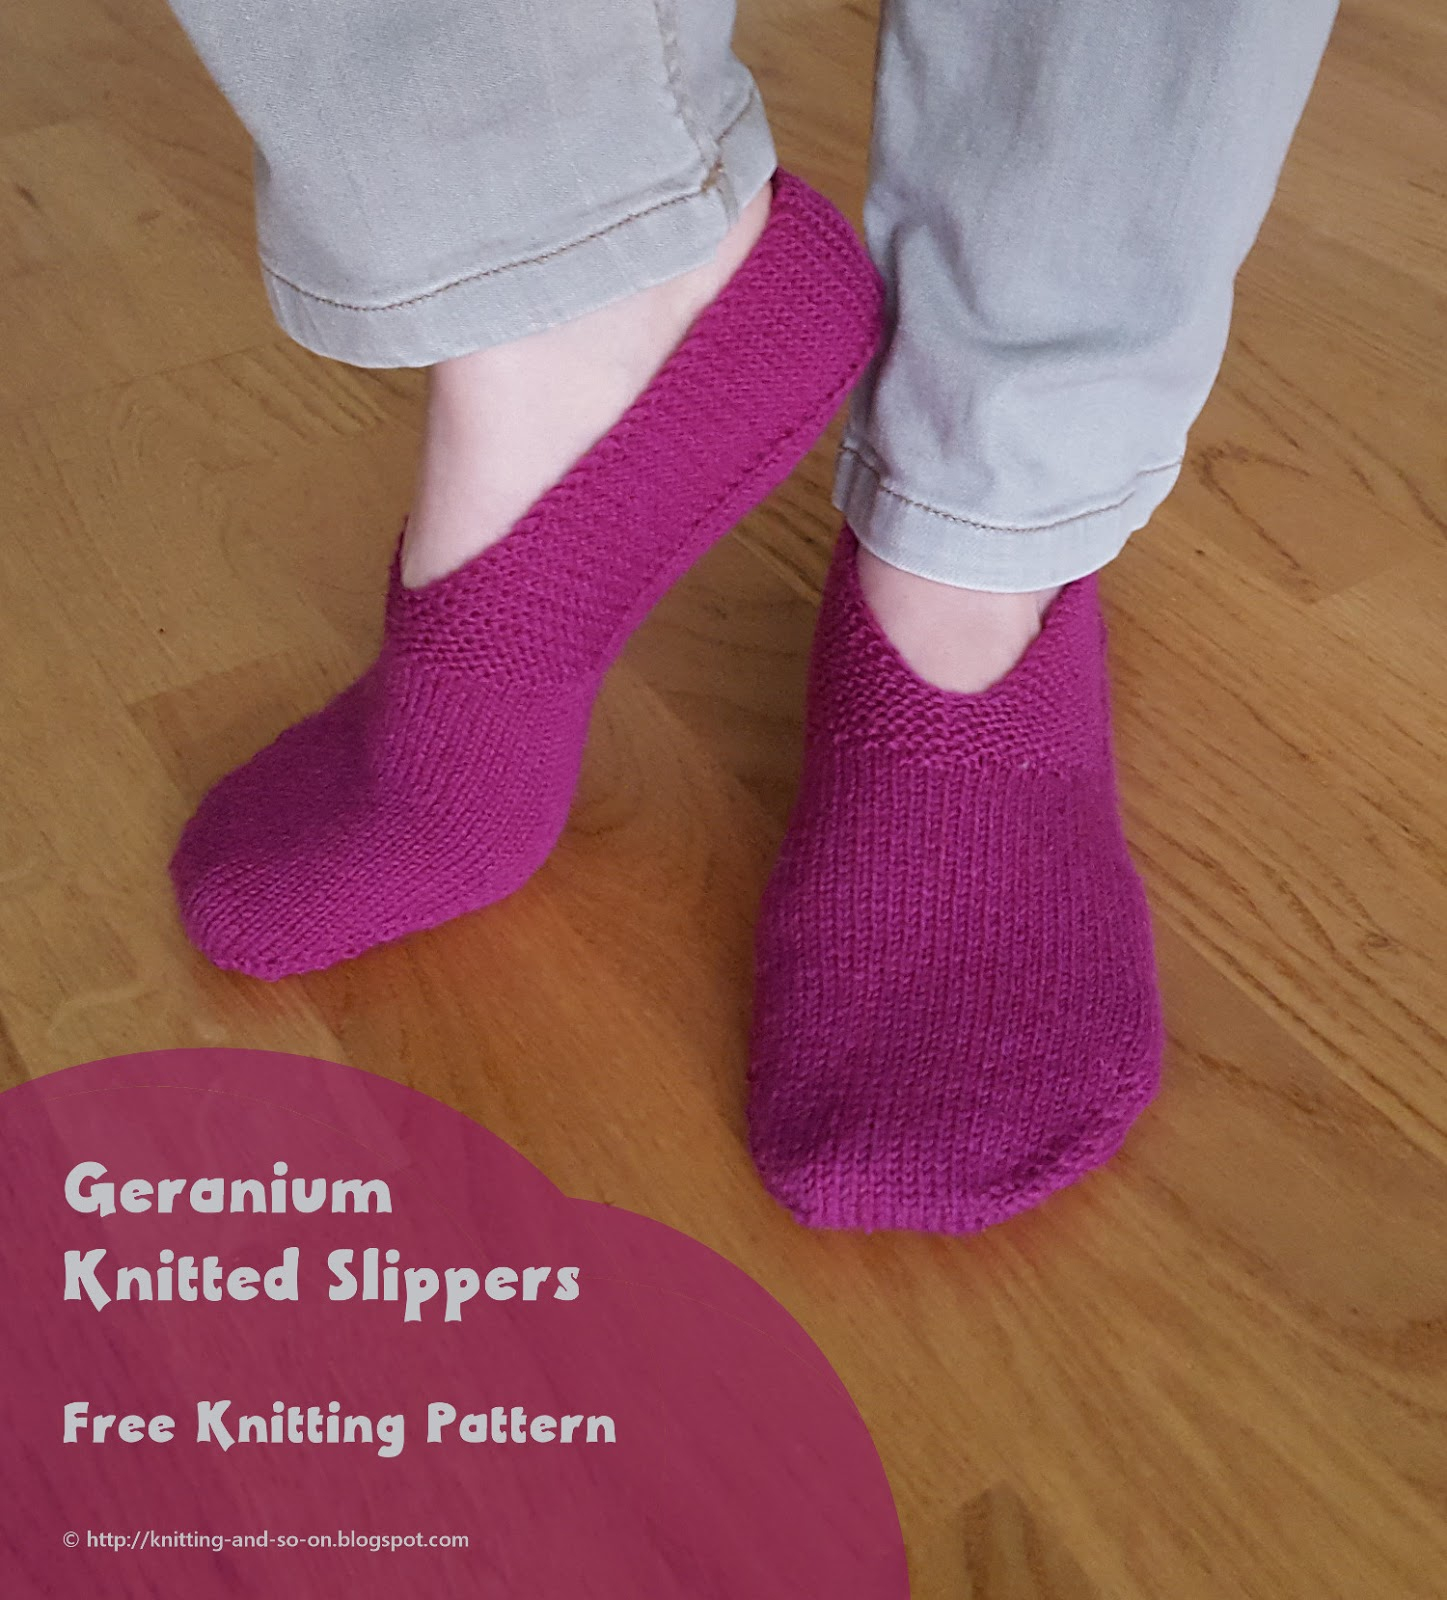 Free Patterns For Knitted Slippers Knitting And So On Geranium Knitted Slippers